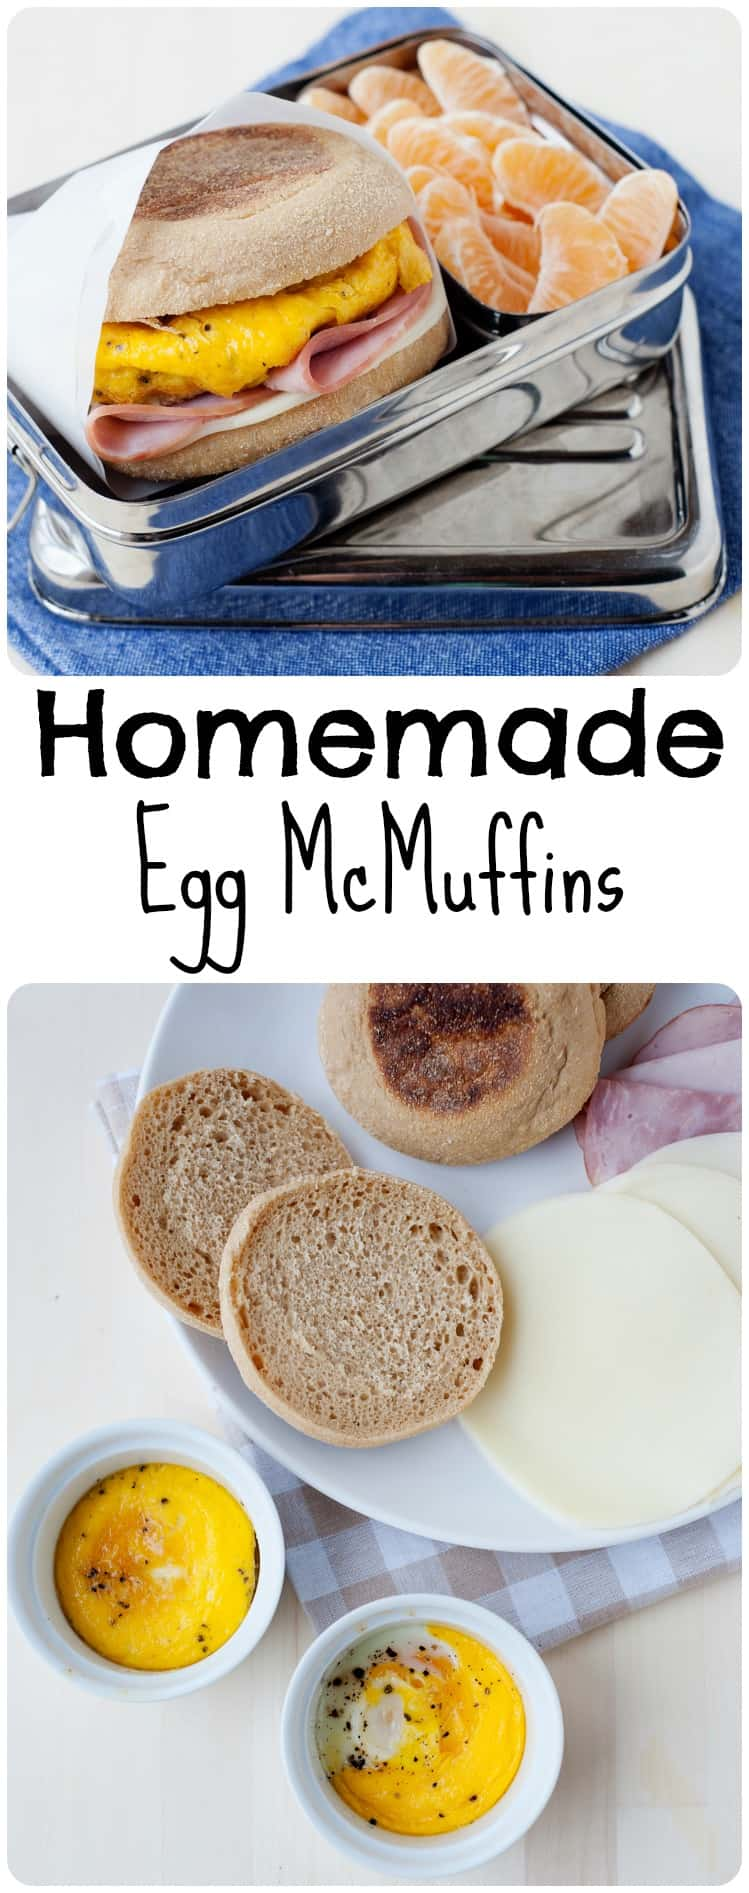 Looking to make your favorite 'out to eat' breakfast sandwich at home? MOMables has got you covered with this easy, make ahead Homemade Egg McMuffin!